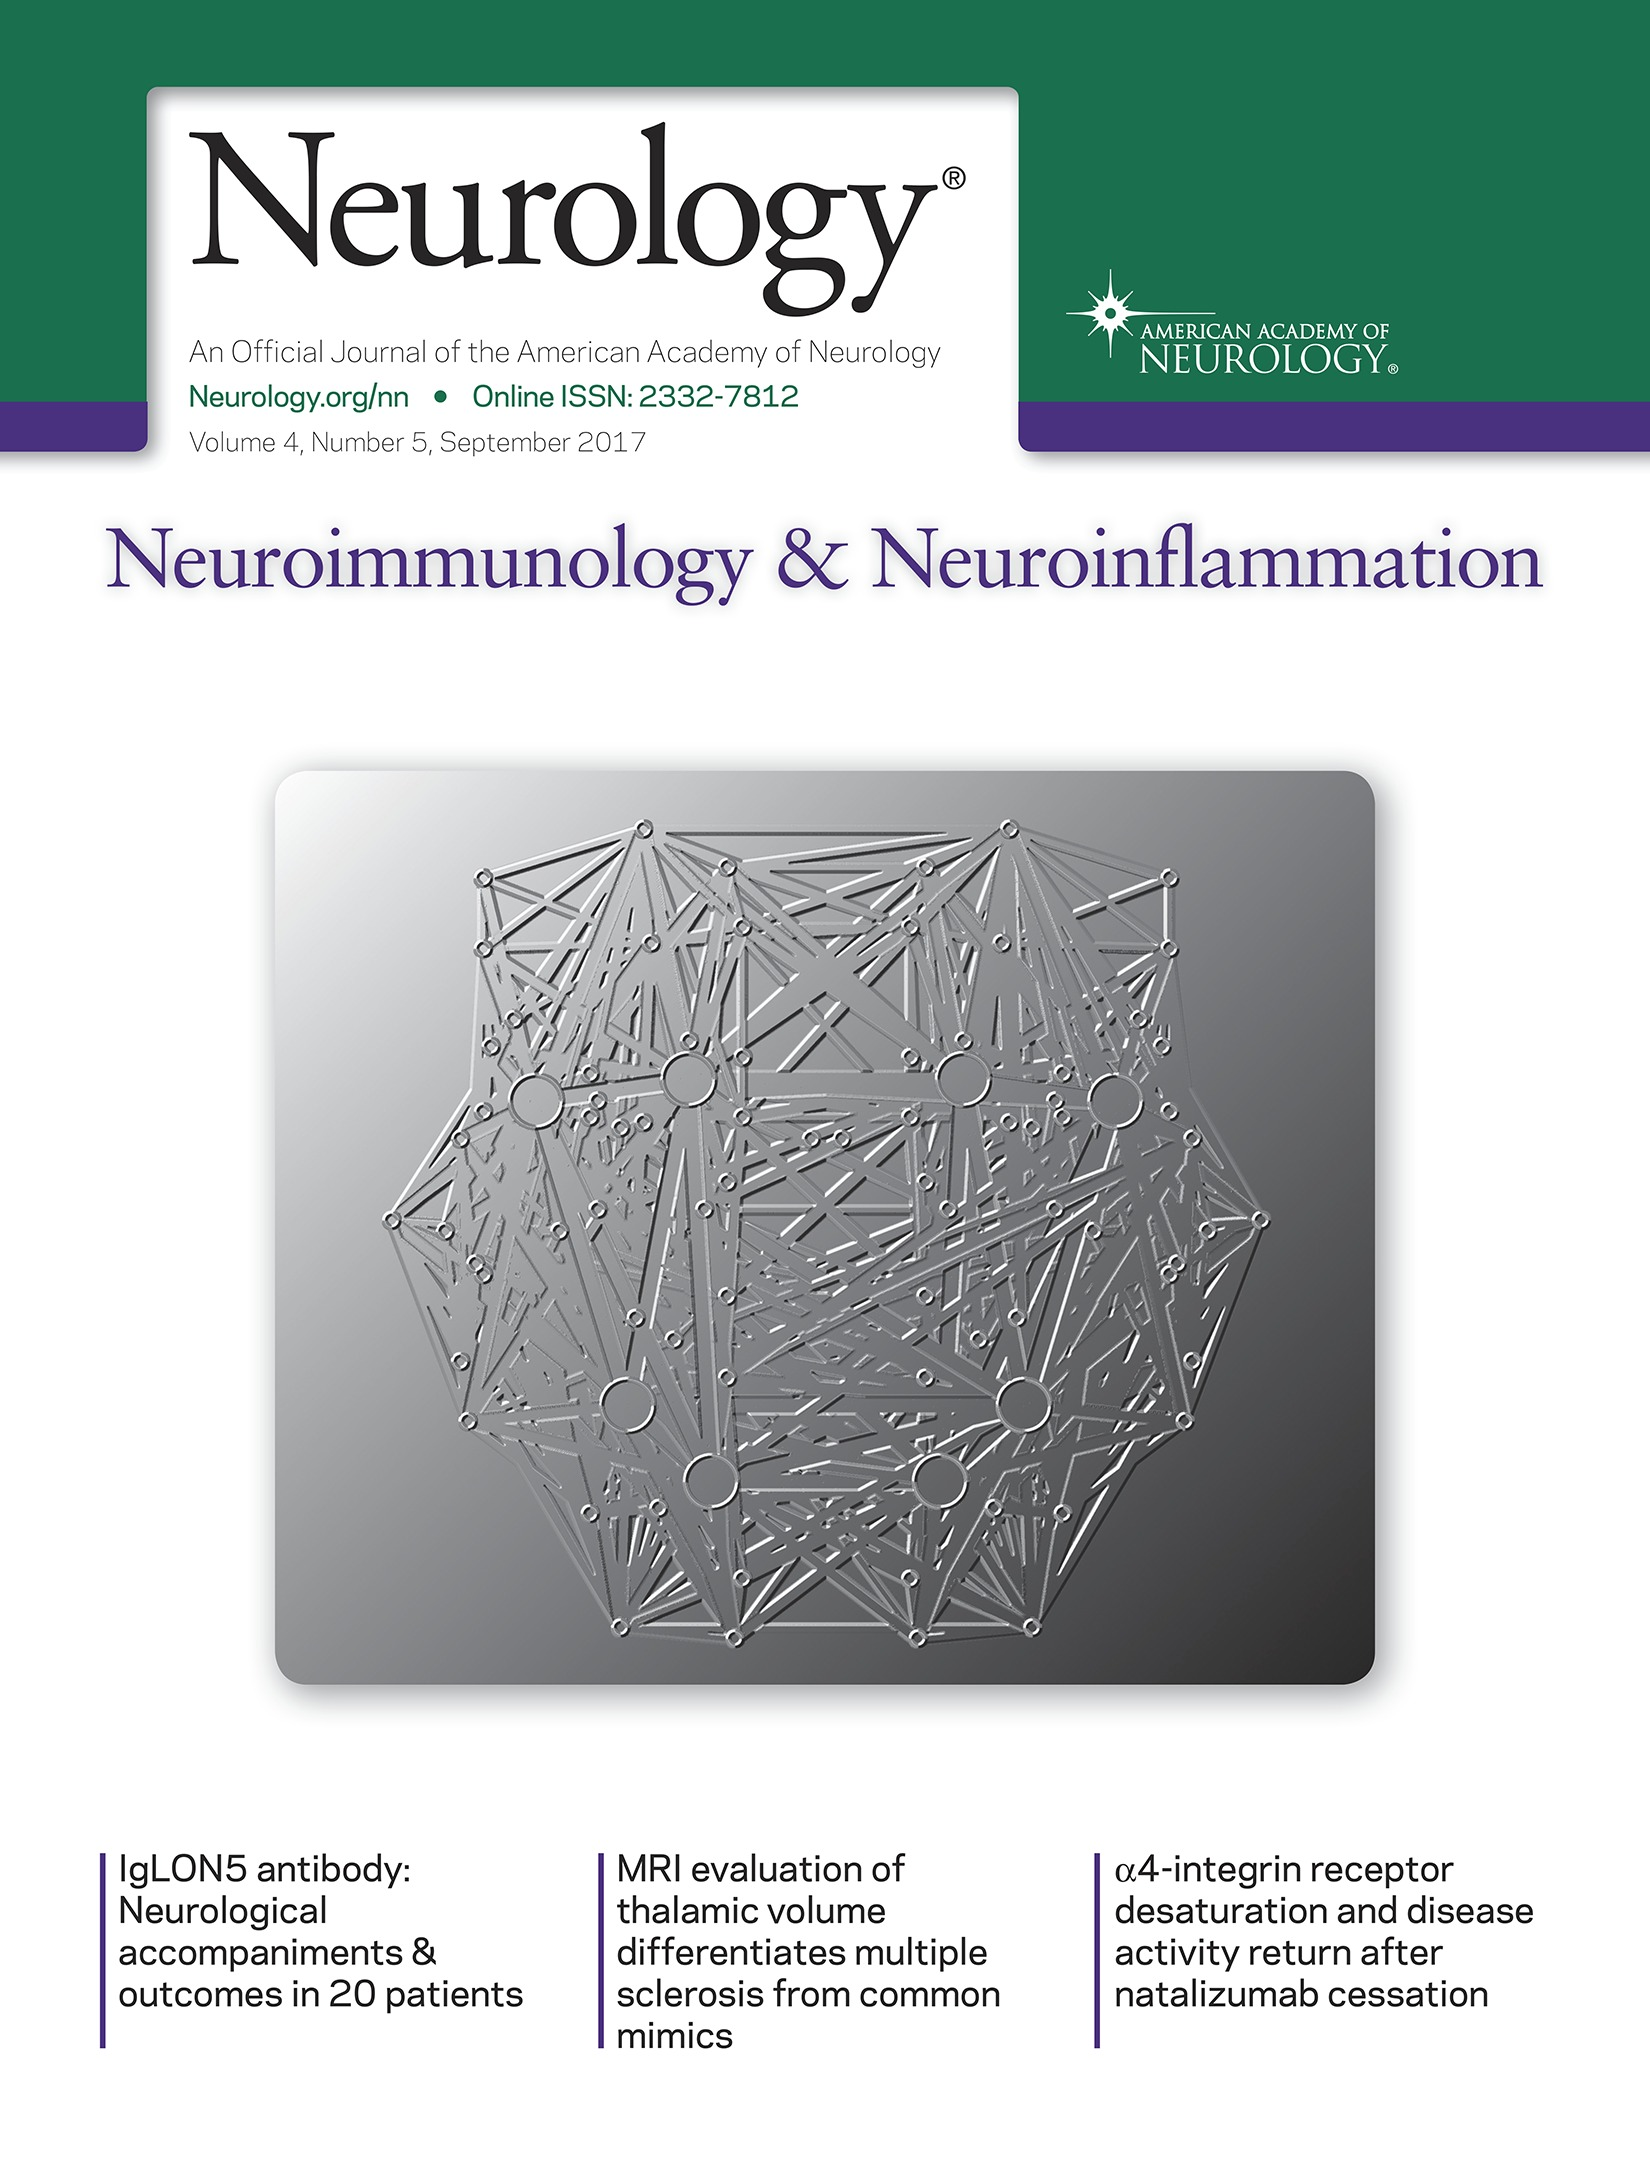 Frequencies of neuronal autoantibo s in healthy controls